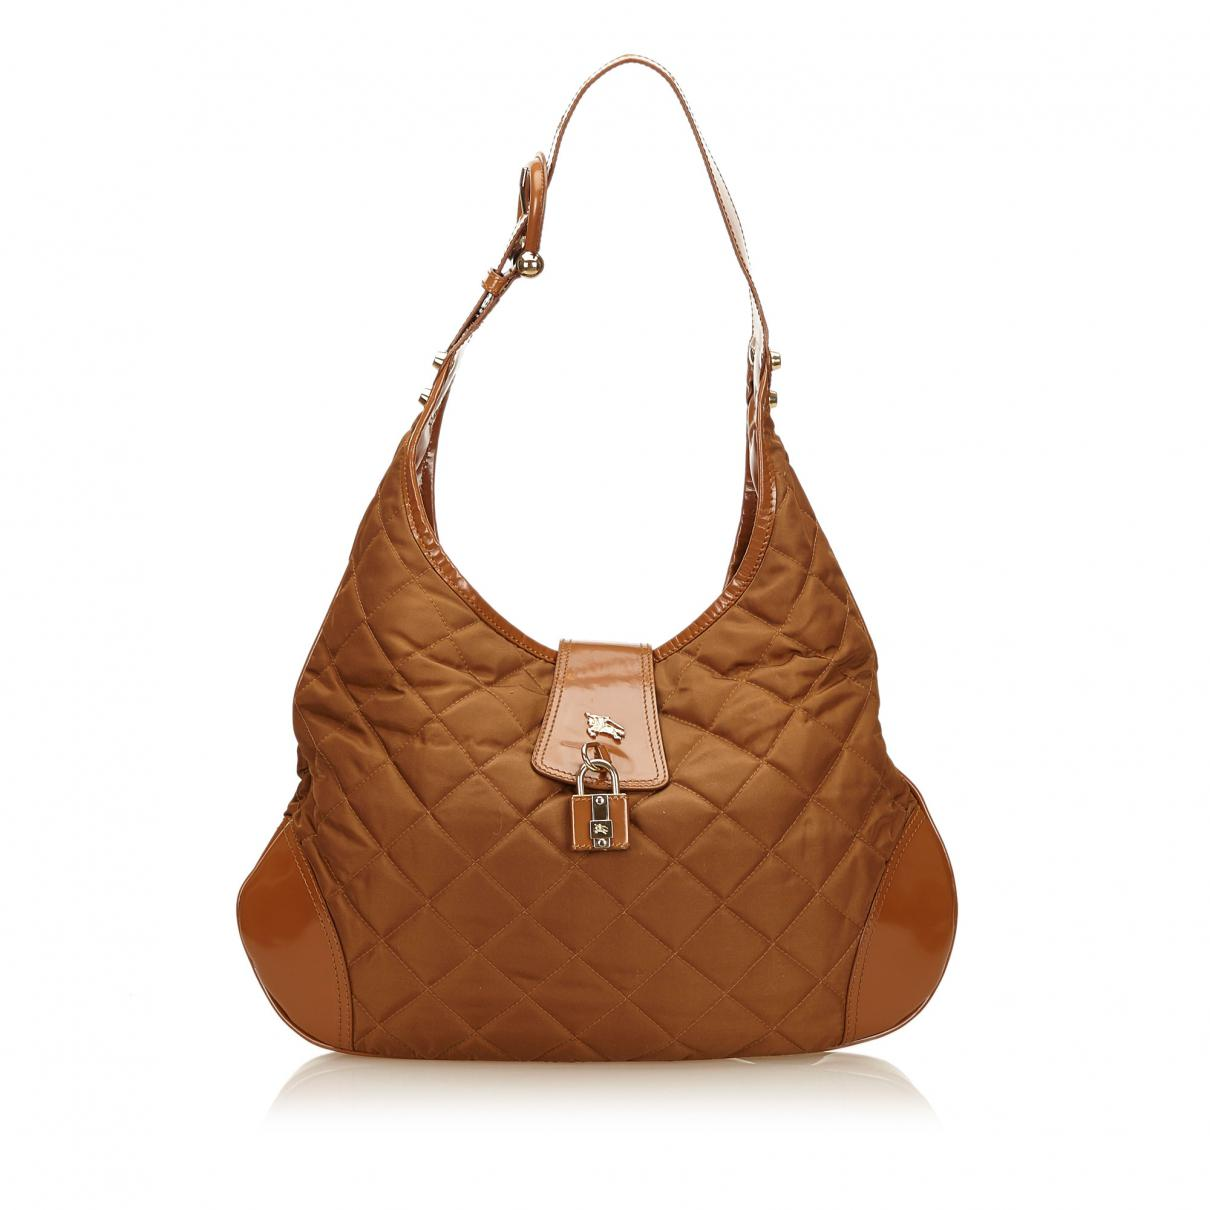 Burberry Women S Brown Pre Owned Handbag